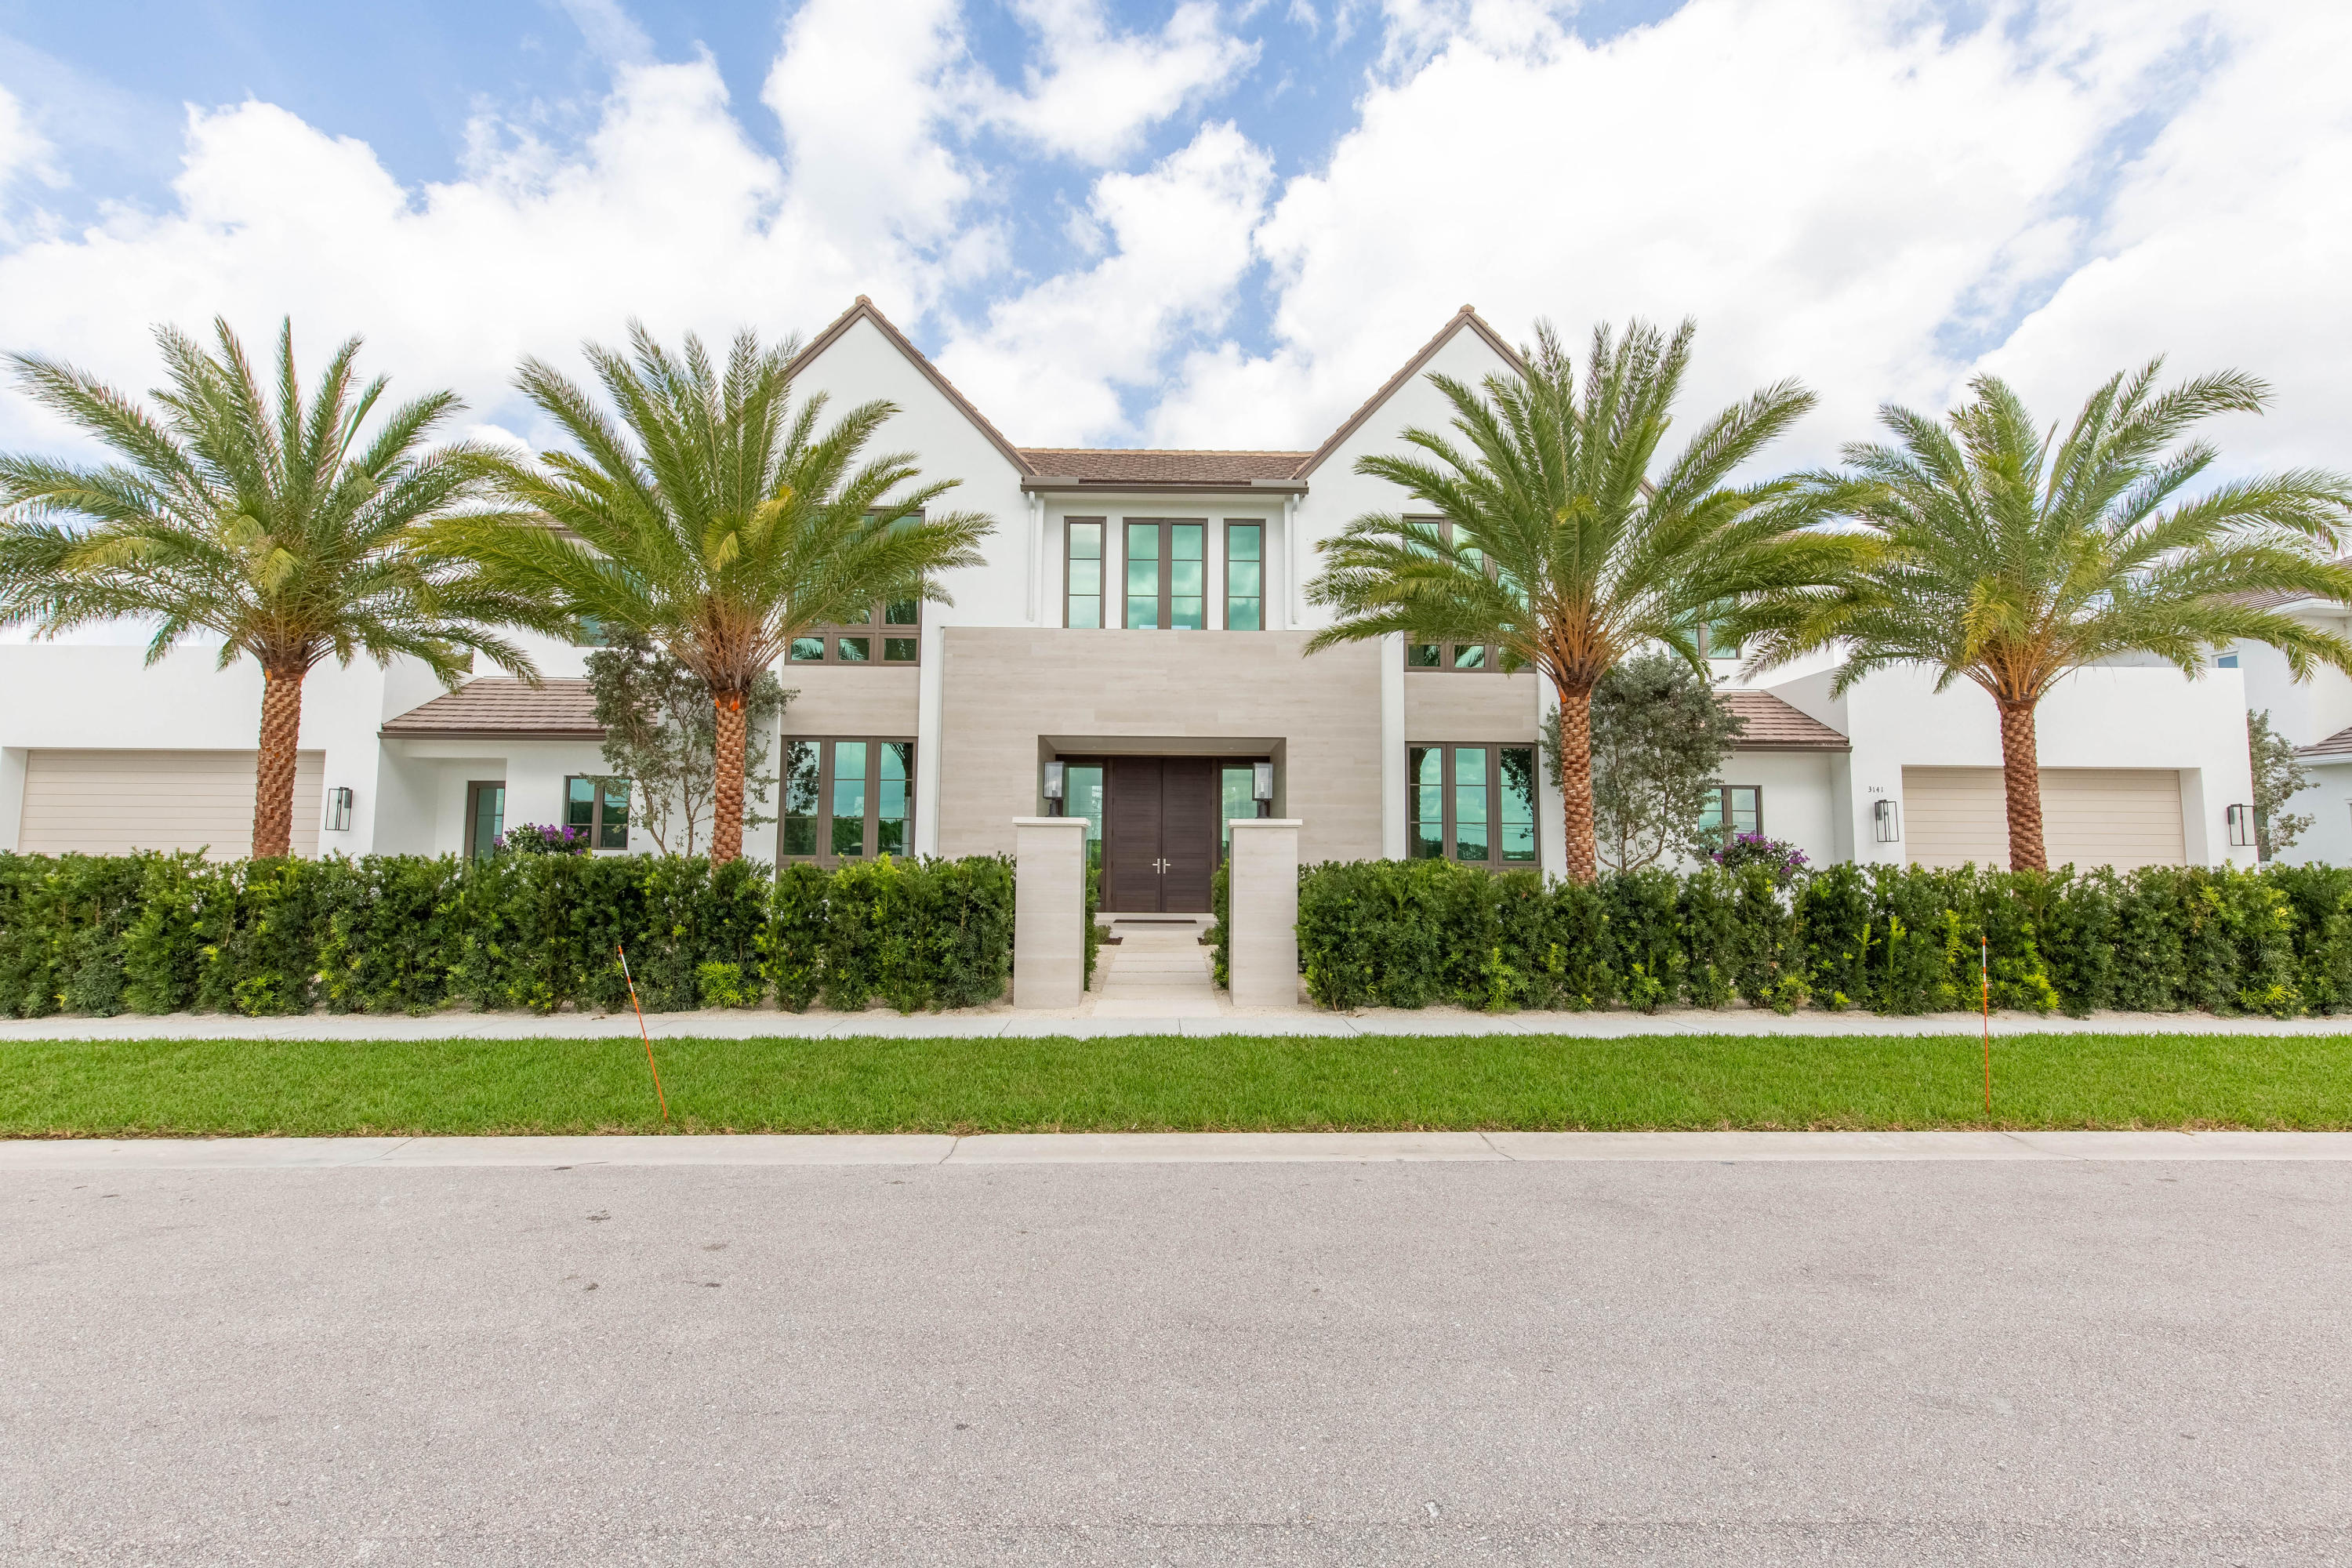 Photo of 3141 Blue Cypress Lane, Wellington, FL 33414